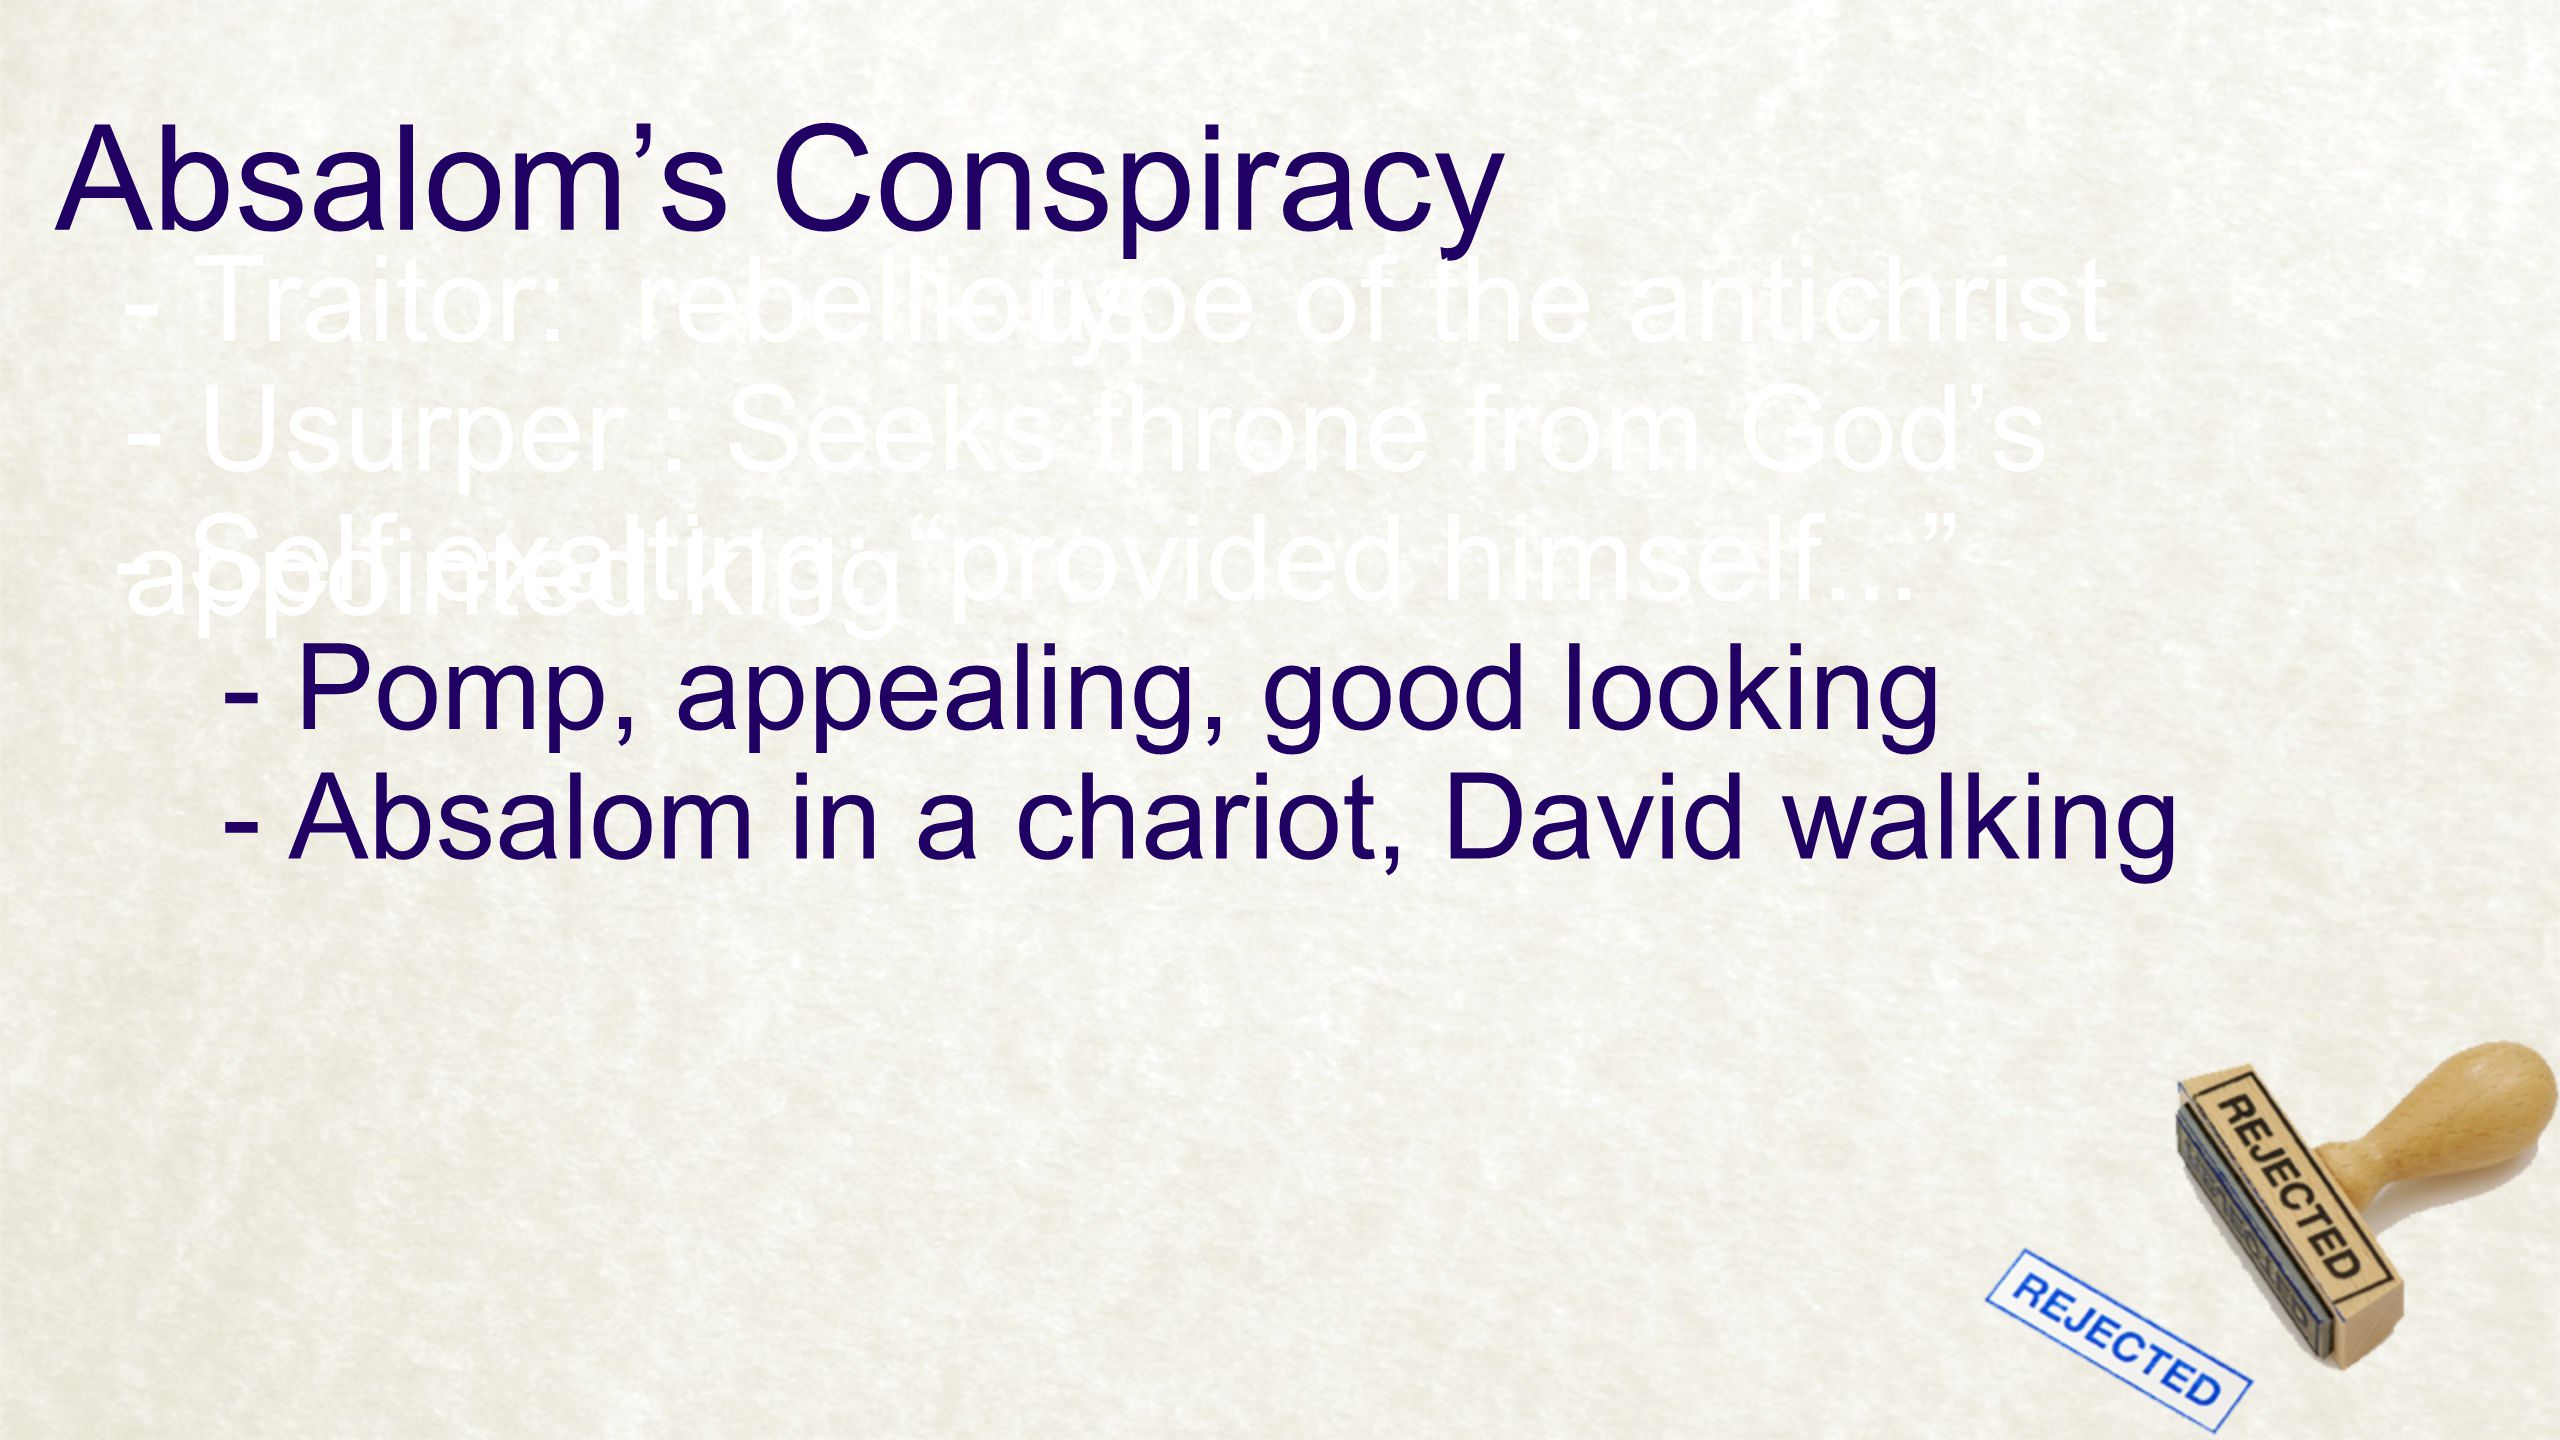 Absalom's Conspiracy - Traitor: rebellious- type of the antichrist - Usurper : Seeks throne from God's appointed king - Self exalting: provided himself... - Pomp, appealing, good looking - Absalom in a chariot, David walking